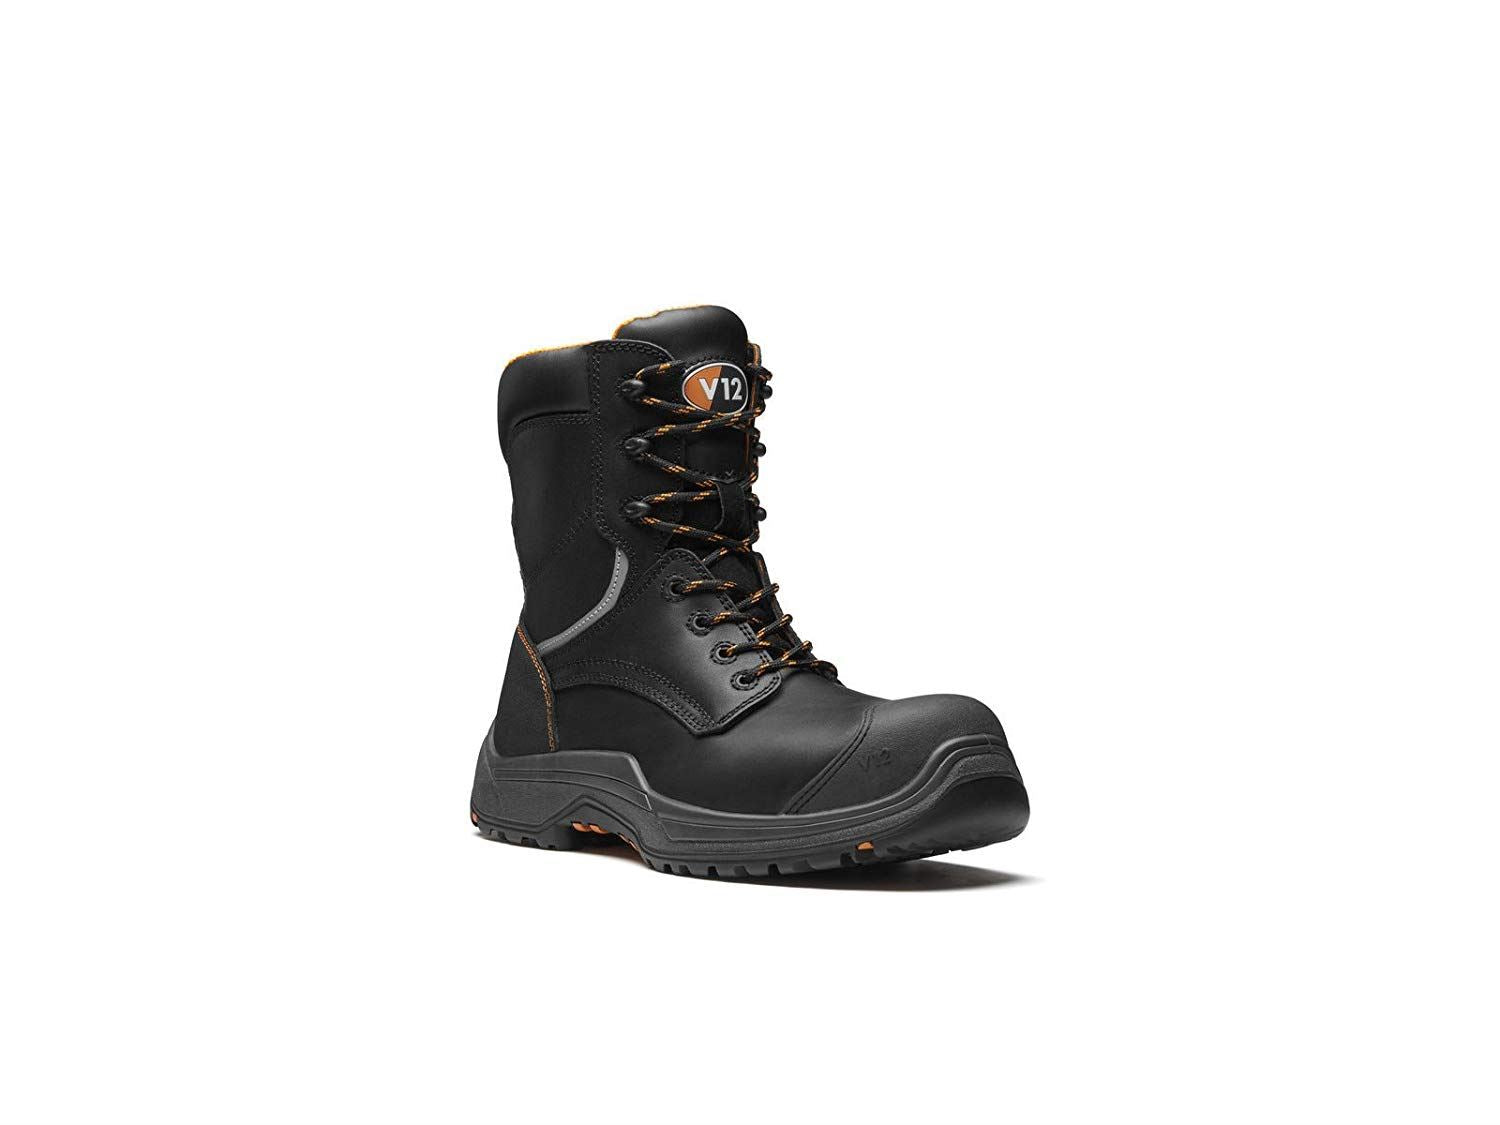 V12 Avenger IGS Zip Side High Leg Boot - Black